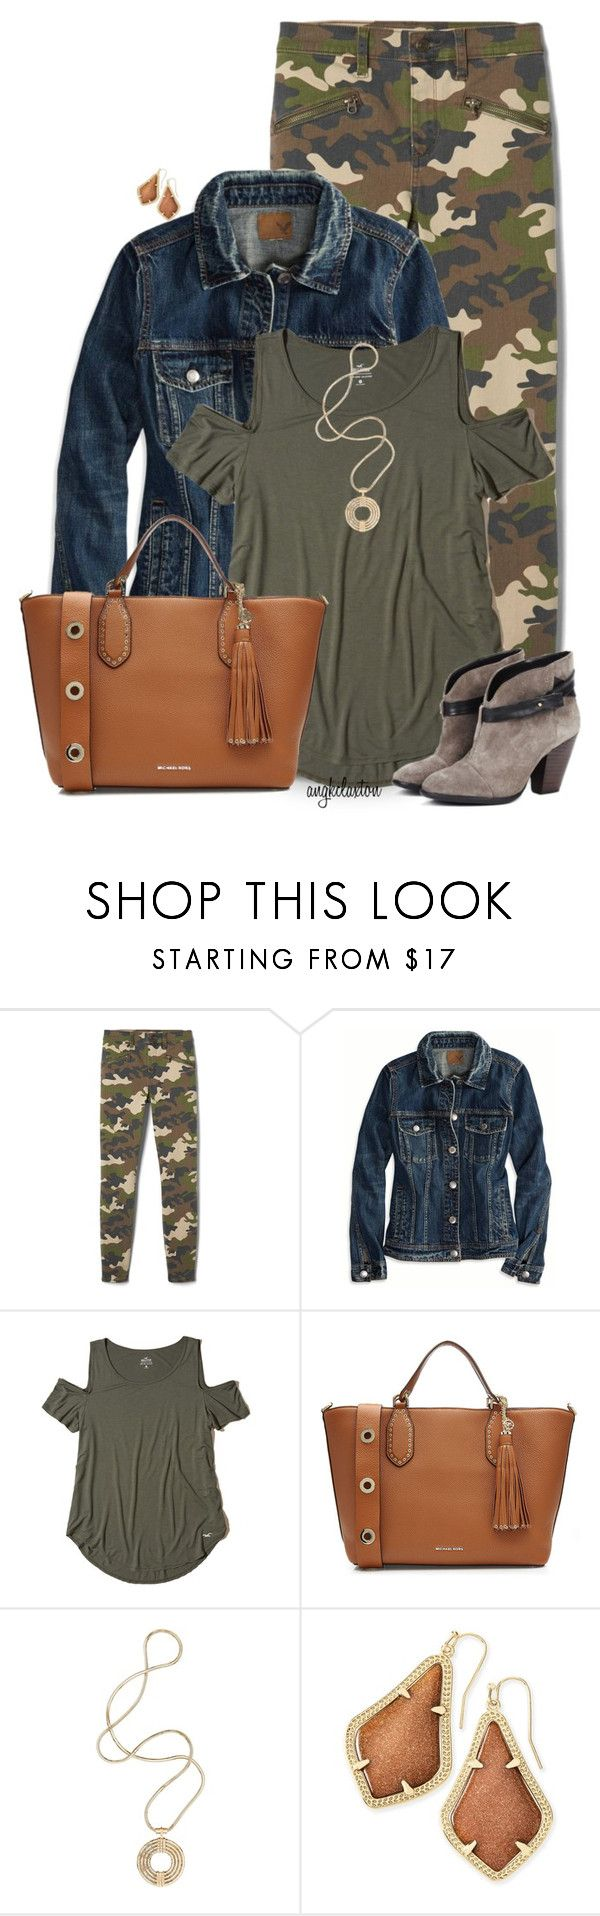 """Camo Jeans"" by angkclaxton ❤ liked on Polyvore featuring American Eagle Outfitters, Hollister Co., MICHAEL Michael Kors, Sole Society, Lara Bohinc and Kendra Scott"